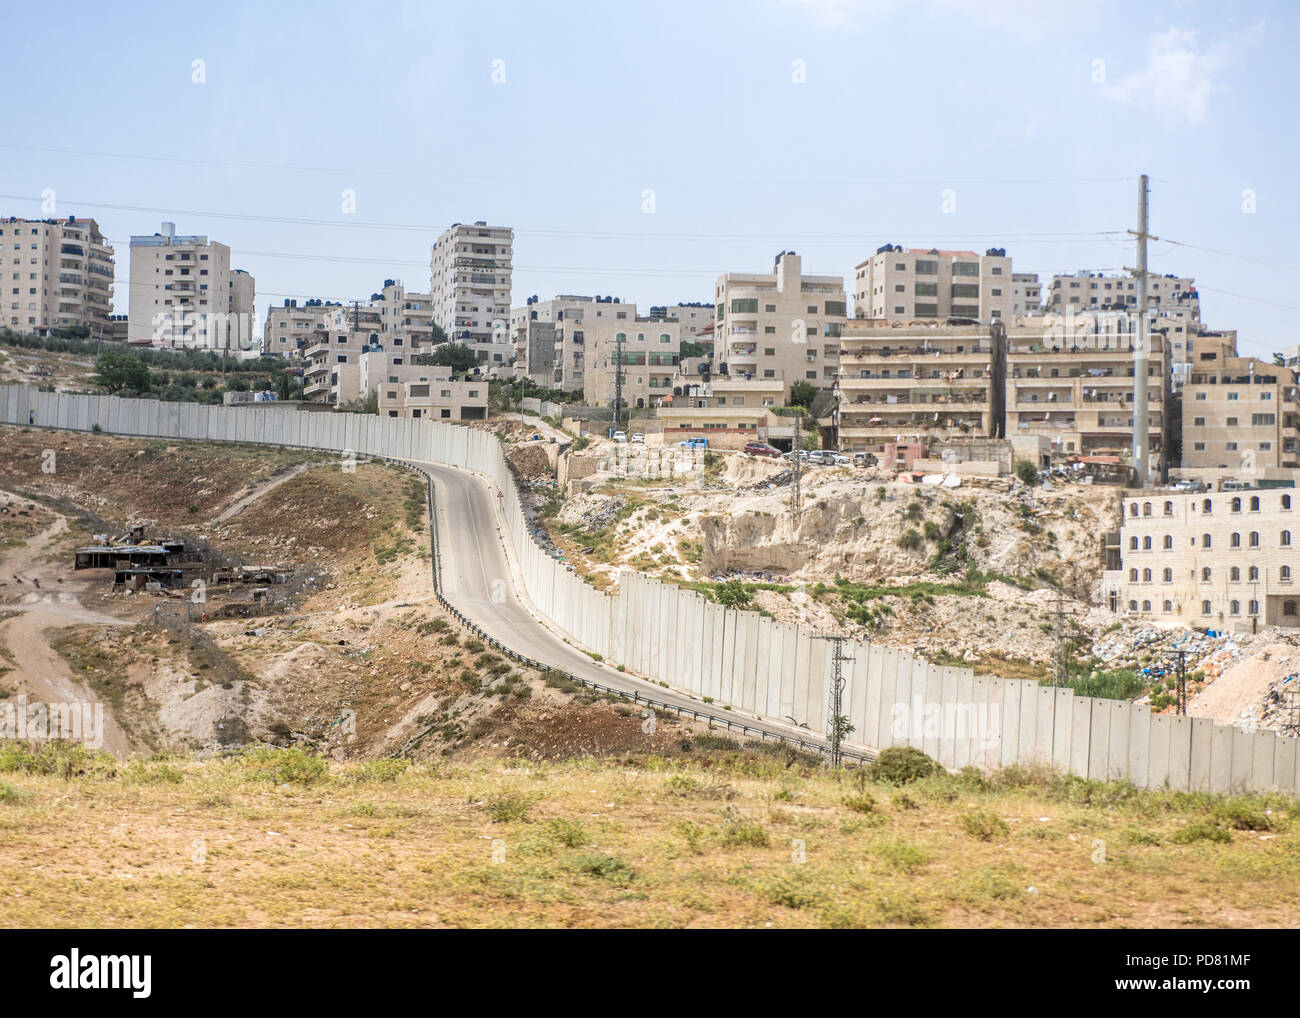 View from the Dead Sea to Jerusalem road in the West Bank Palestinian area of the Separation Barrier, here a high concrete wall, and Israeli apartment - Stock Image